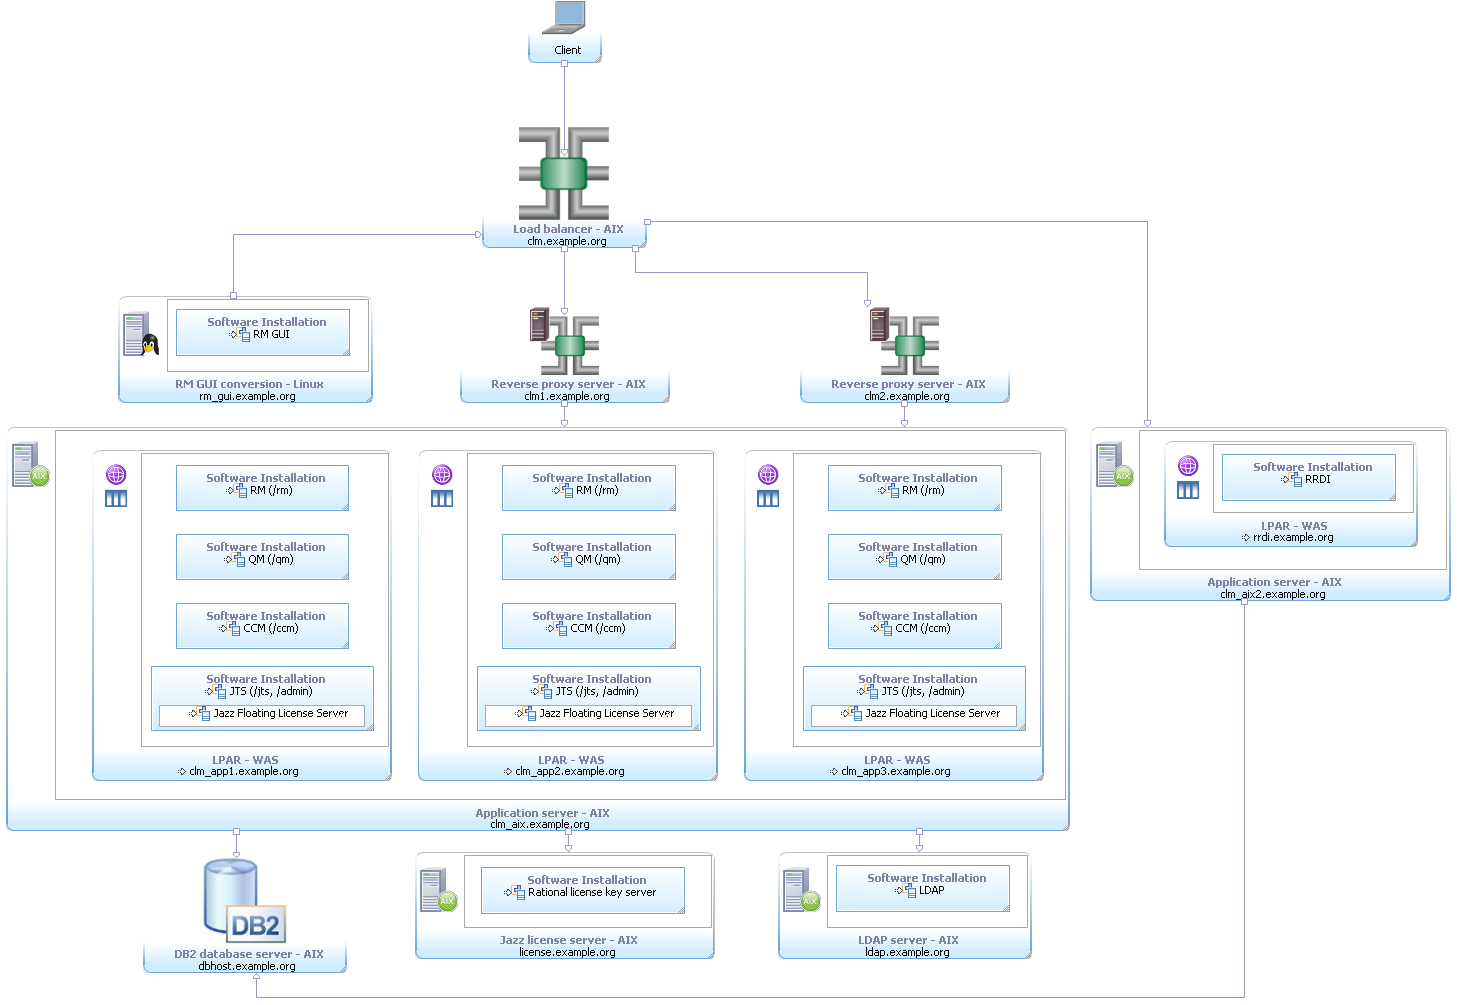 Enterprise_Clustered_AIX_all_IBM.png